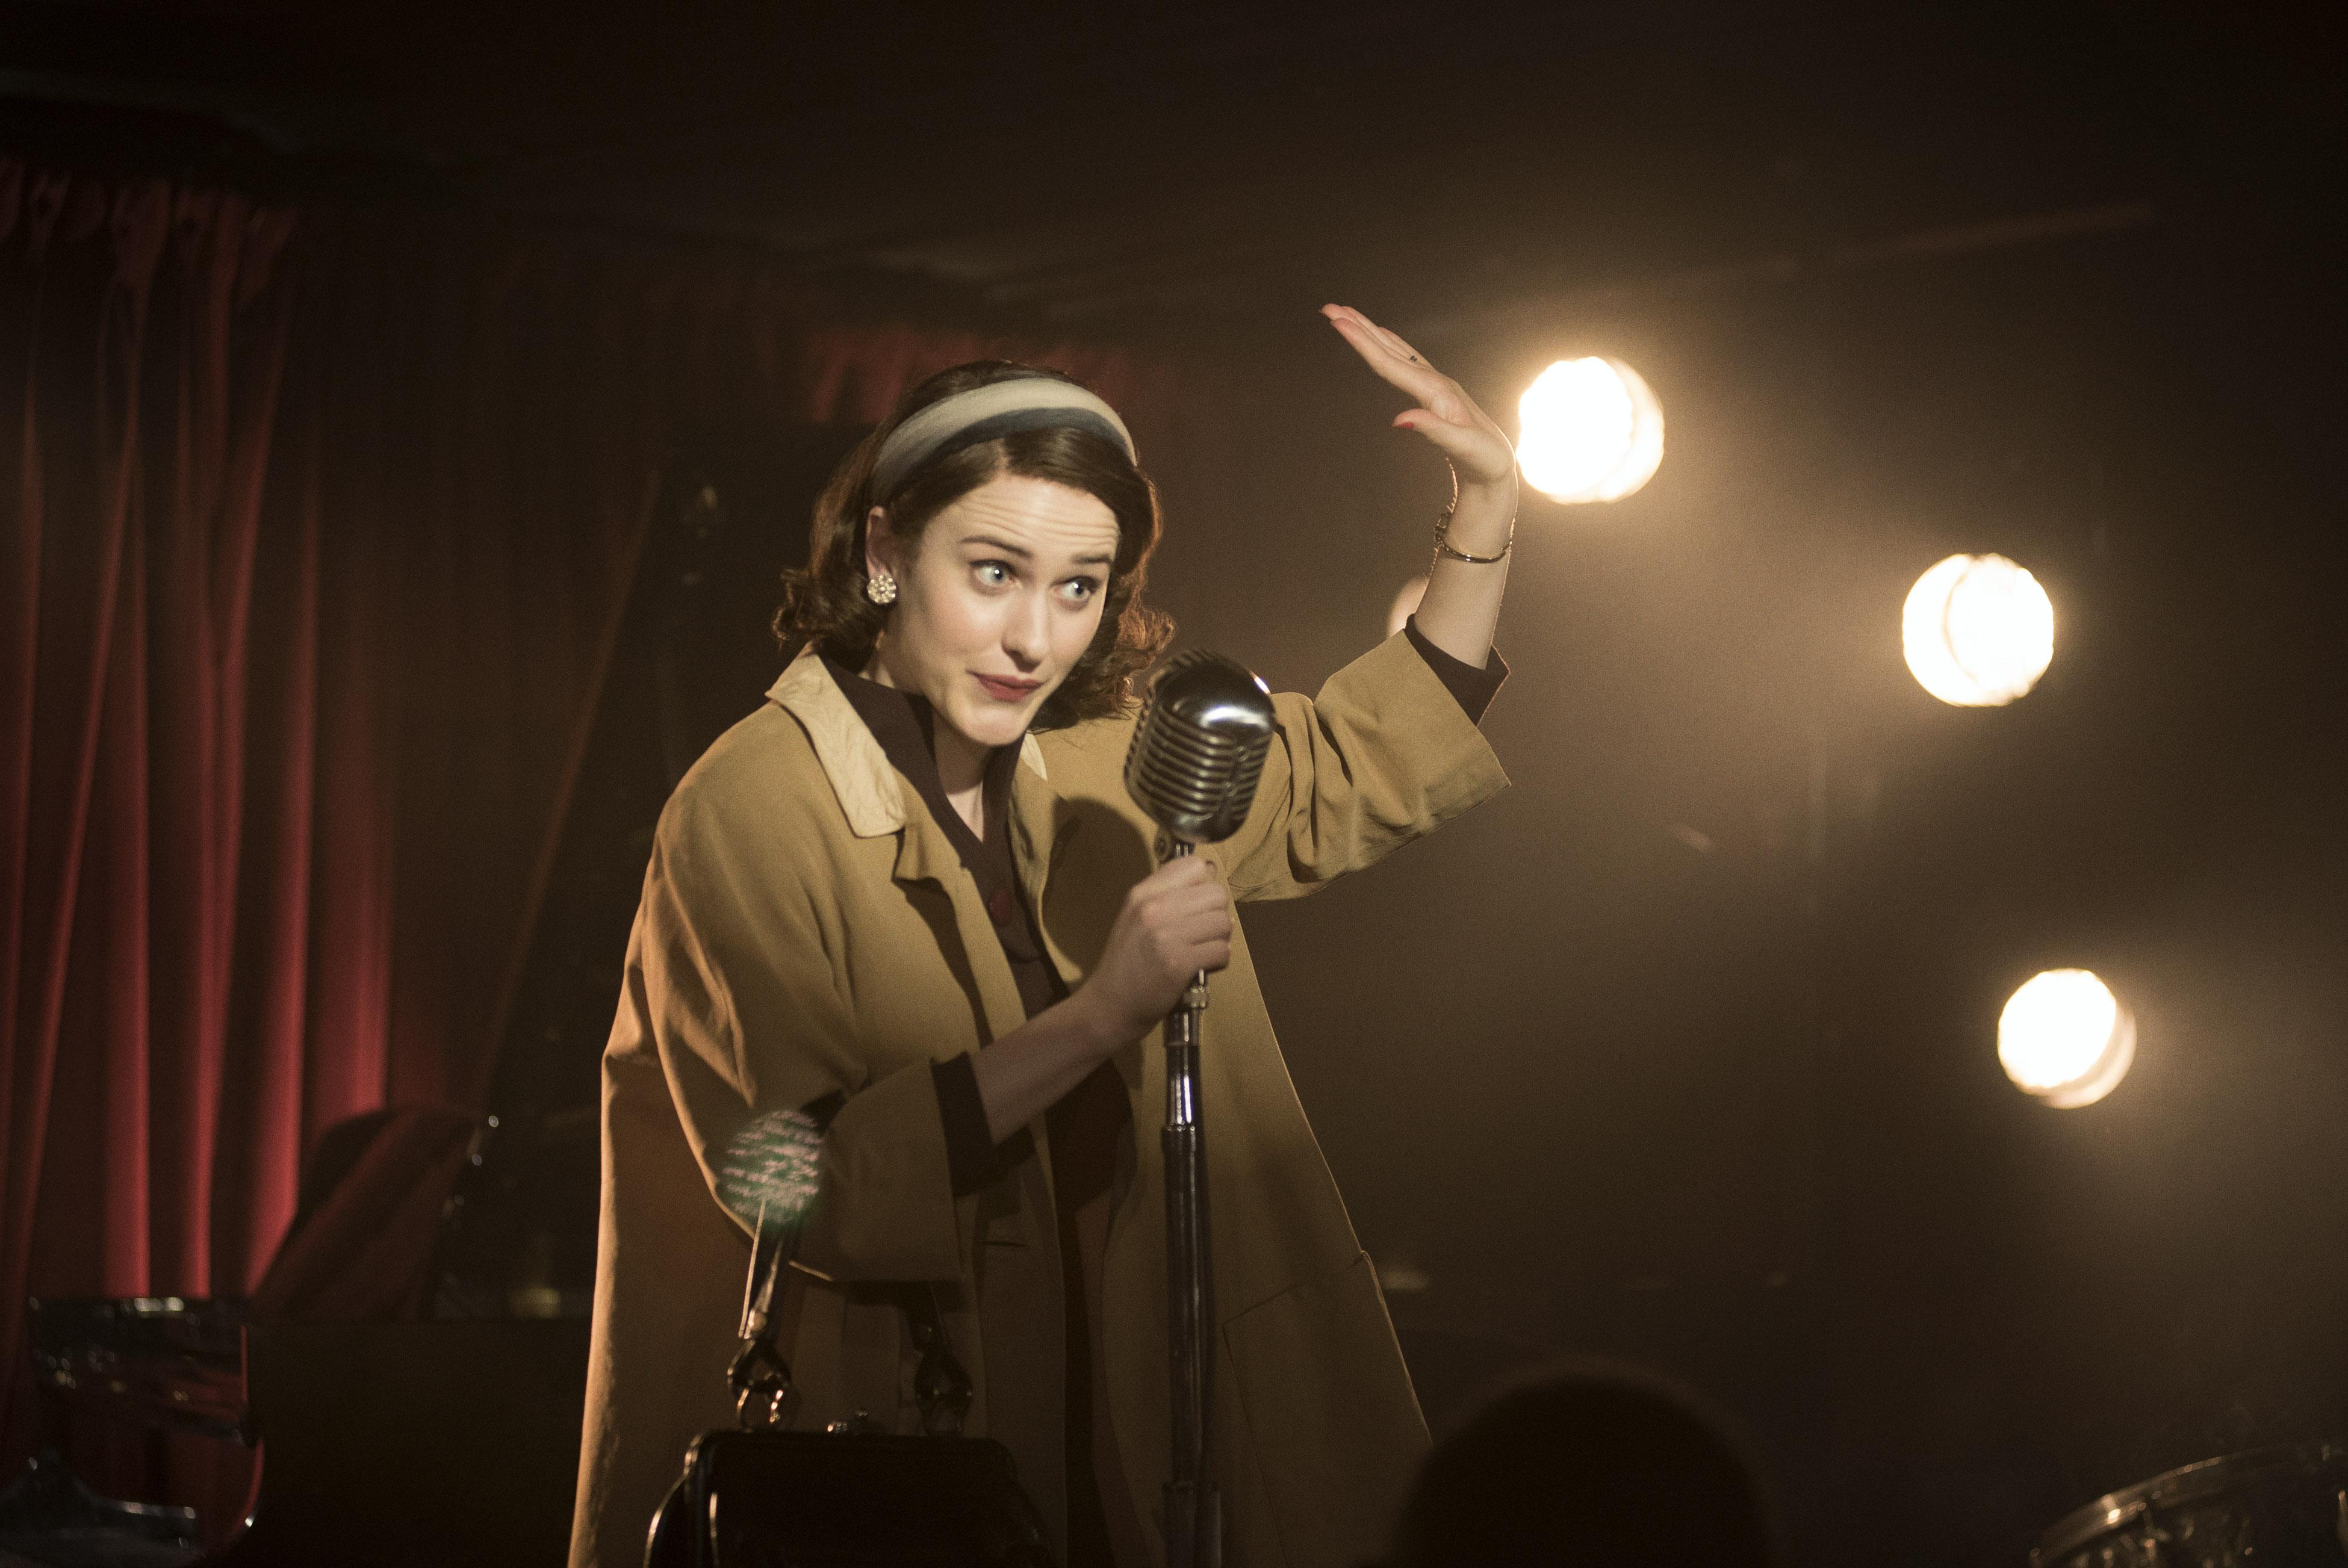 Marvelous Mrs. Maisel Season 2